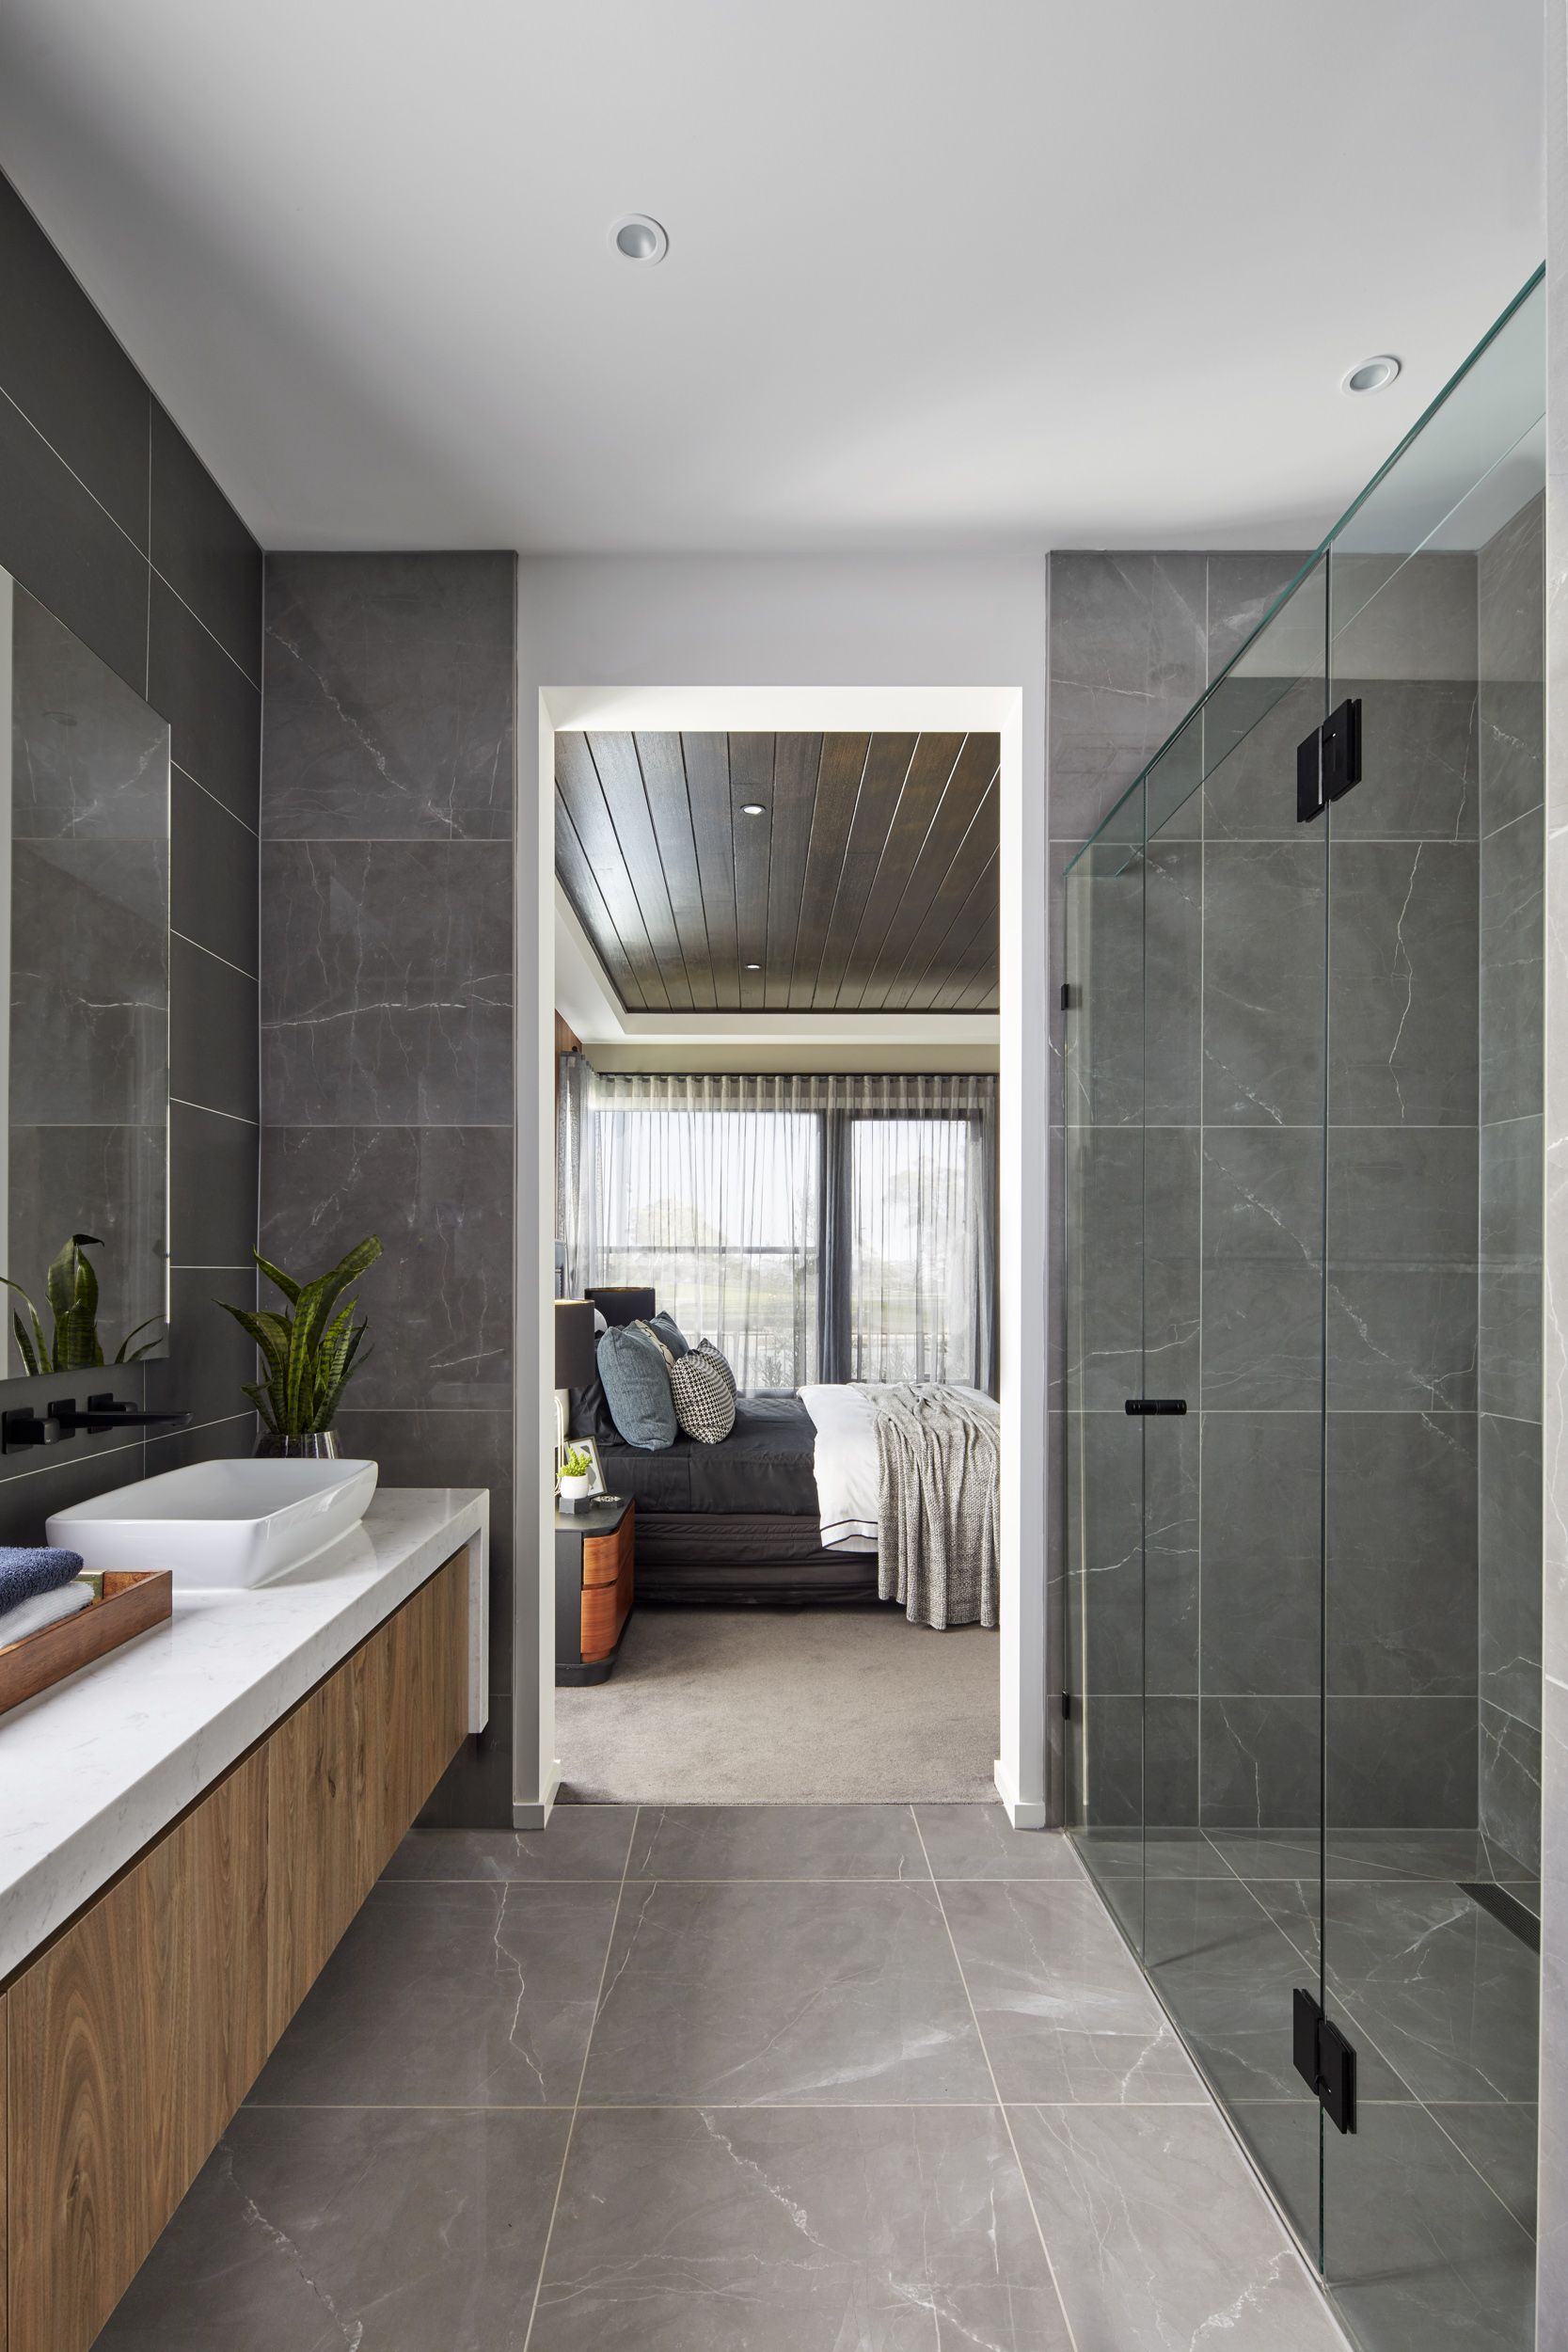 Tremendous Ensuite Discover The Designer By Metricon Berkshire On Download Free Architecture Designs Embacsunscenecom